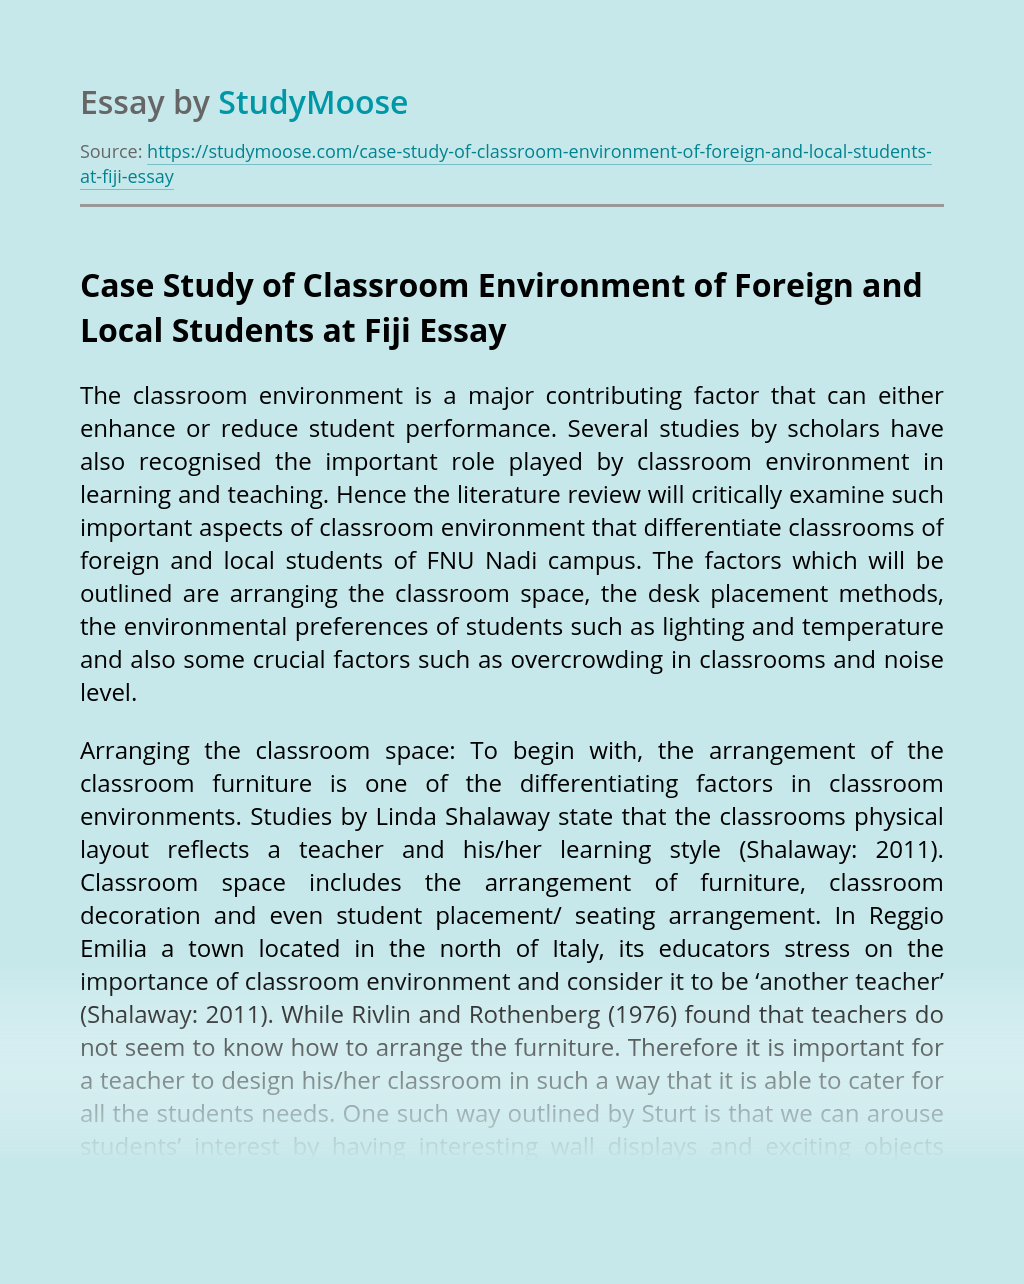 Case Study of Classroom Environment of Foreign and Local Students at Fiji